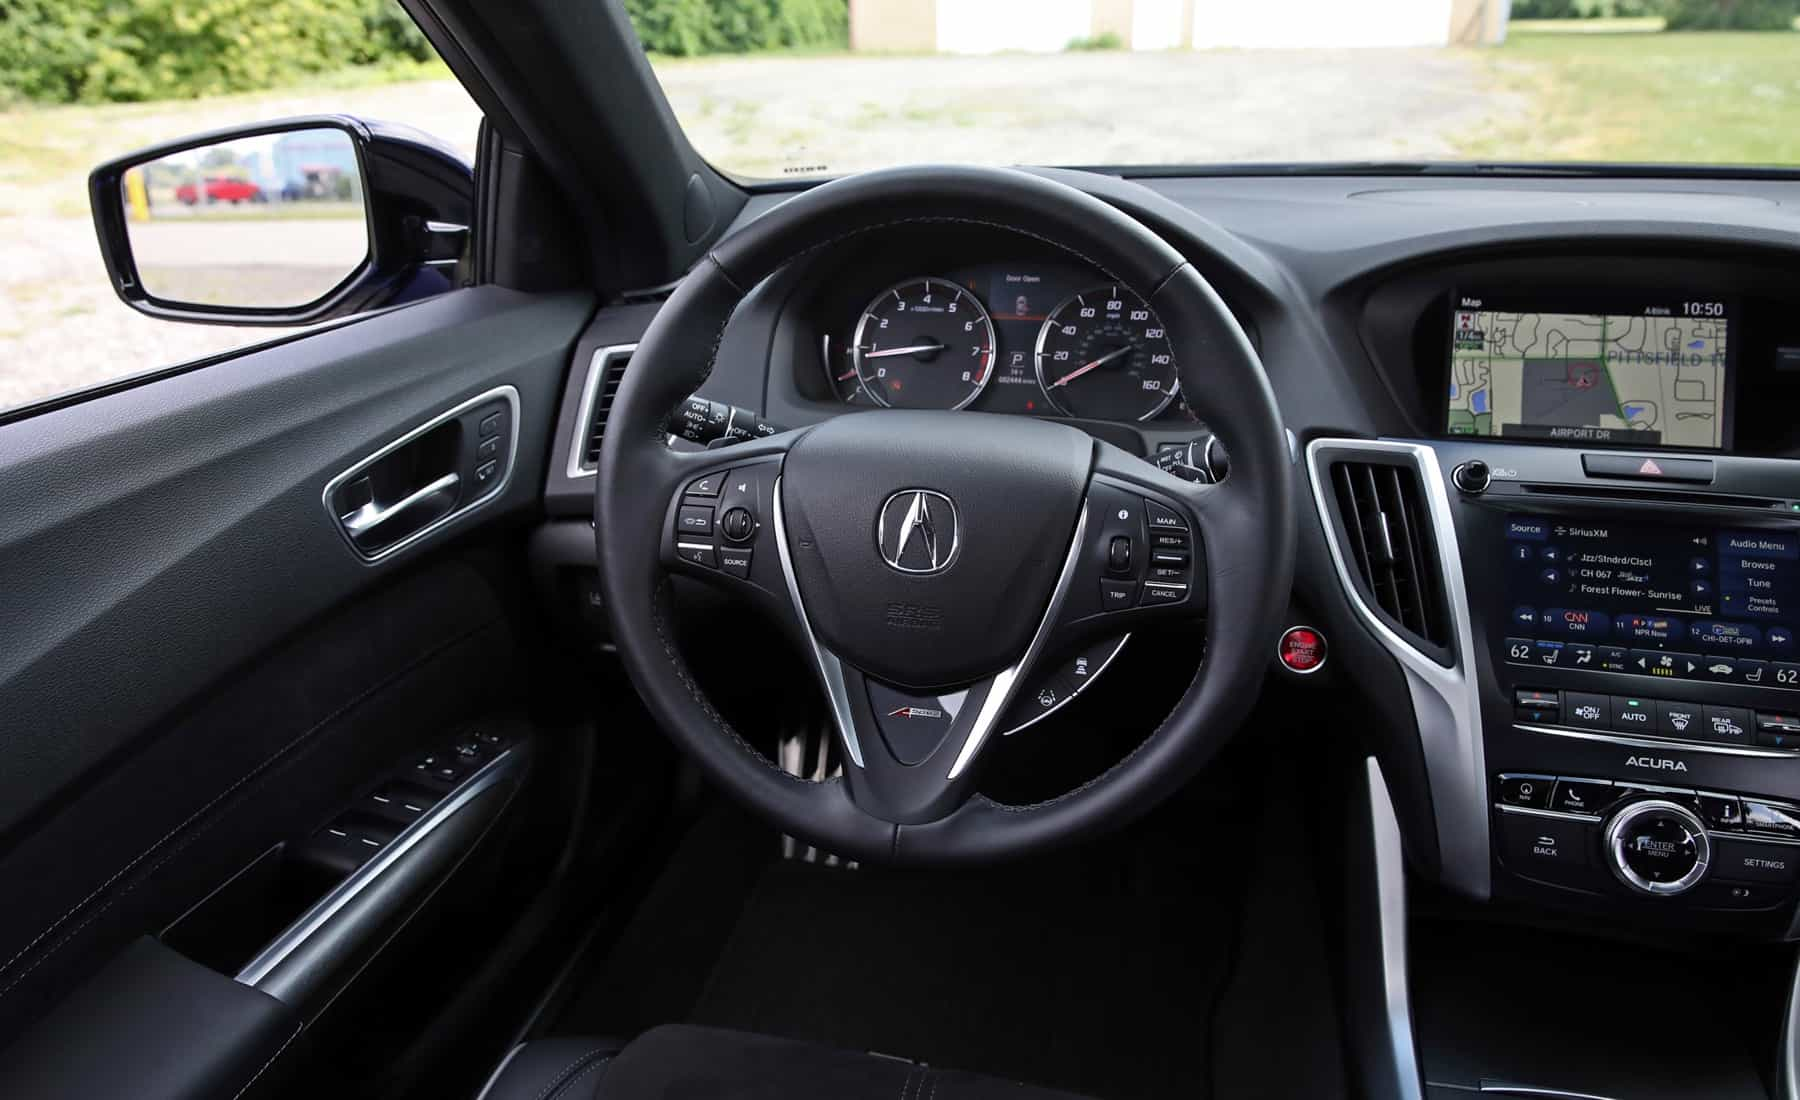 2018 Acura TLX Interior View Steering (Photo 15 of 46)